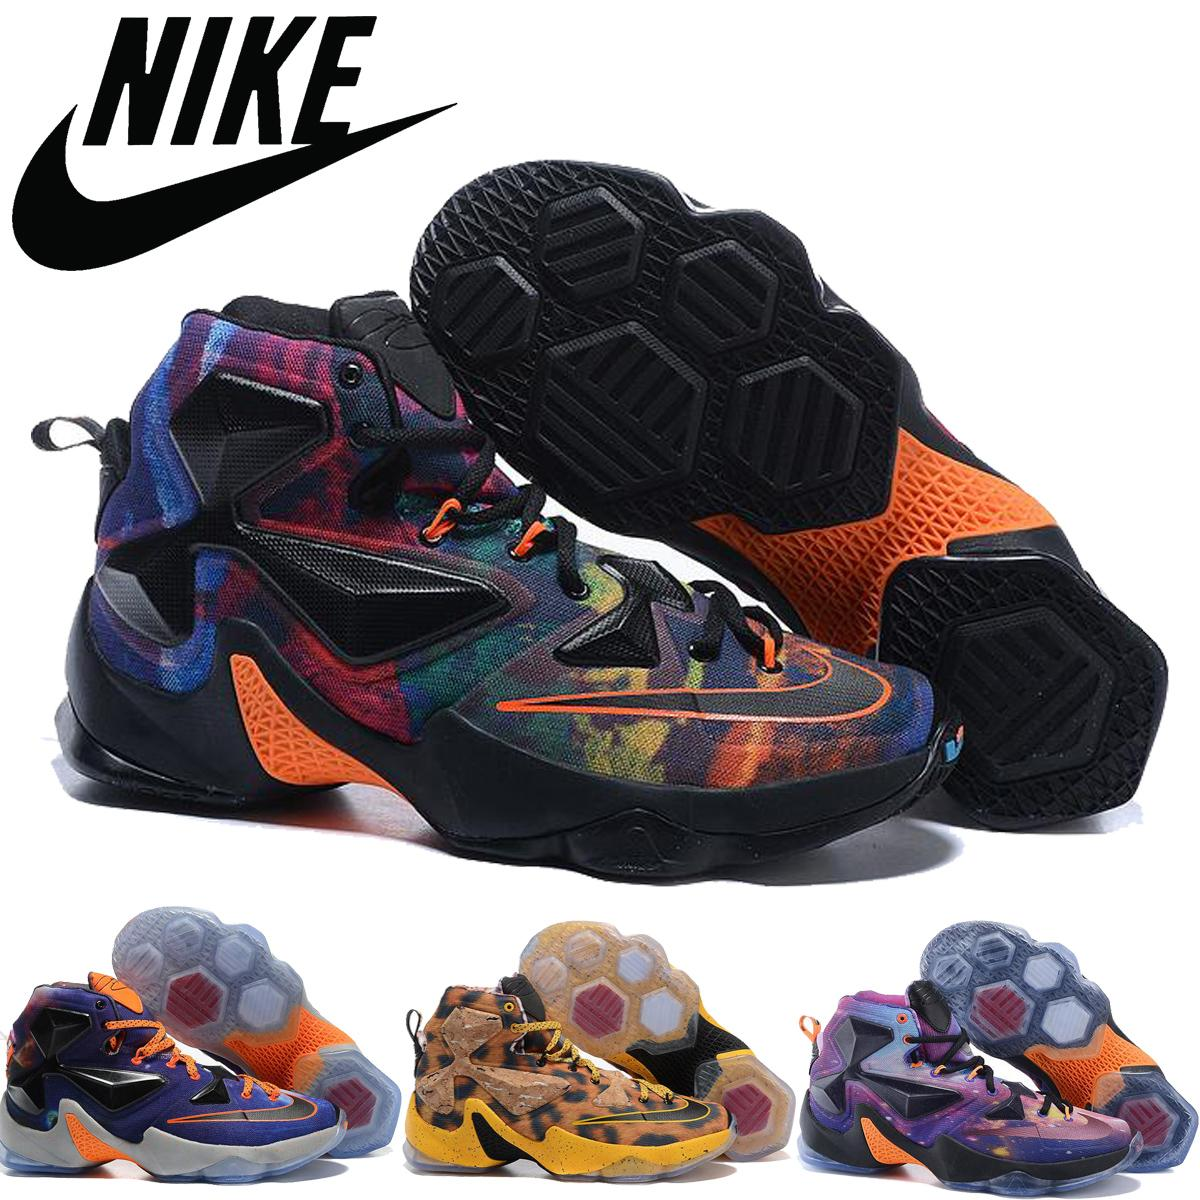 17d94b37f50 ... sale nike lebron 13 xiii horror flick friday the 13th blood splatter  white university red 807219